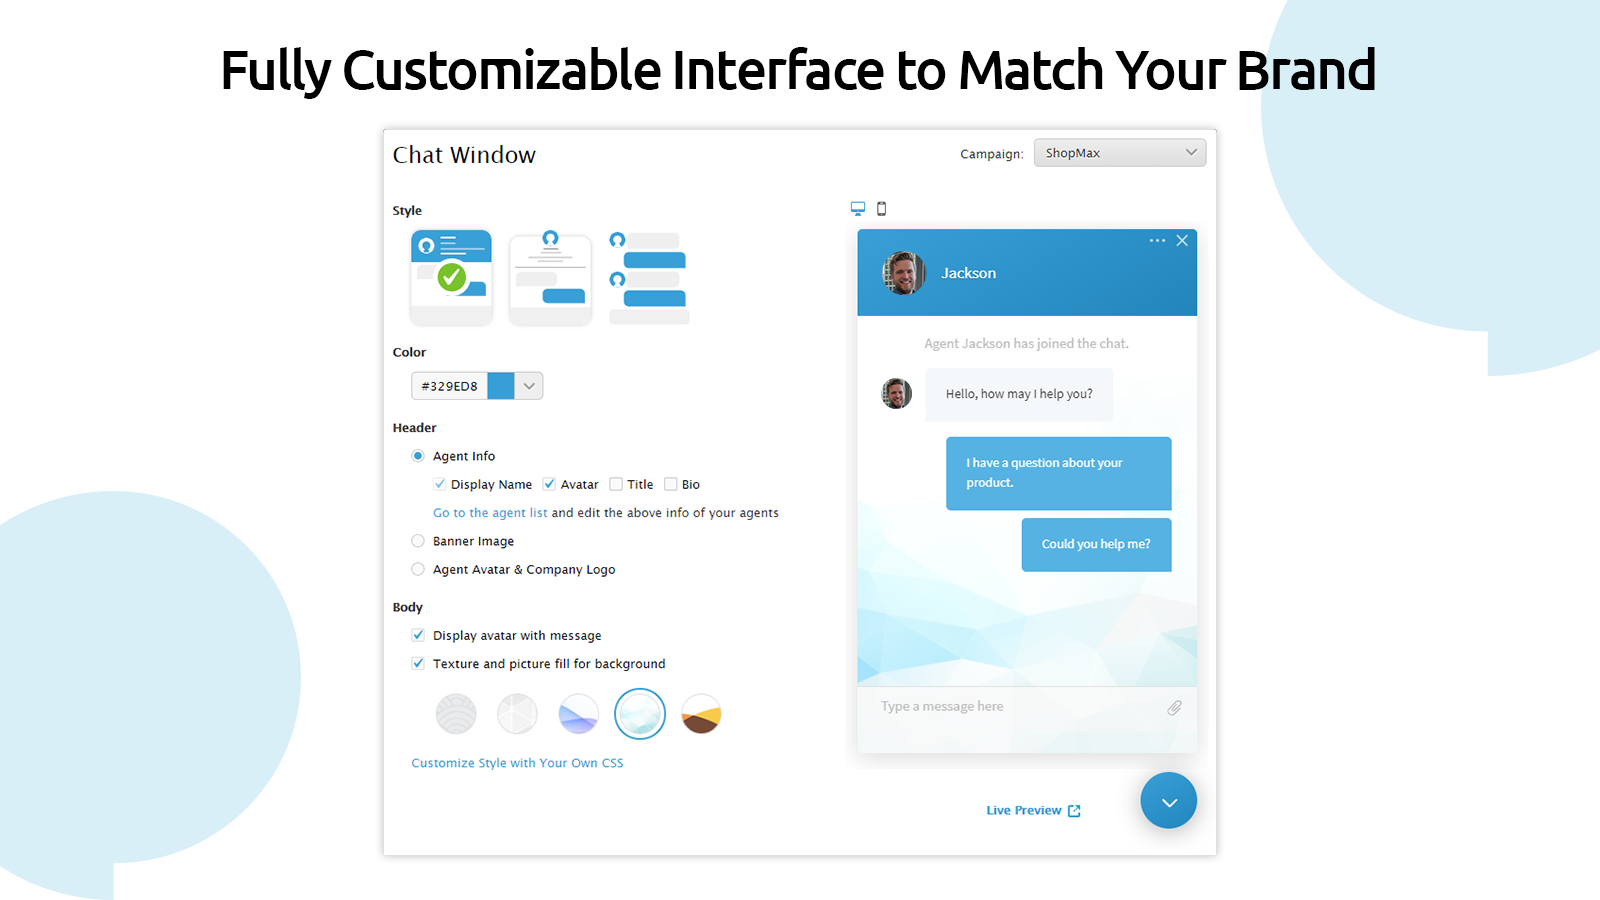 Fully Customizable Interface to Match Your Brand